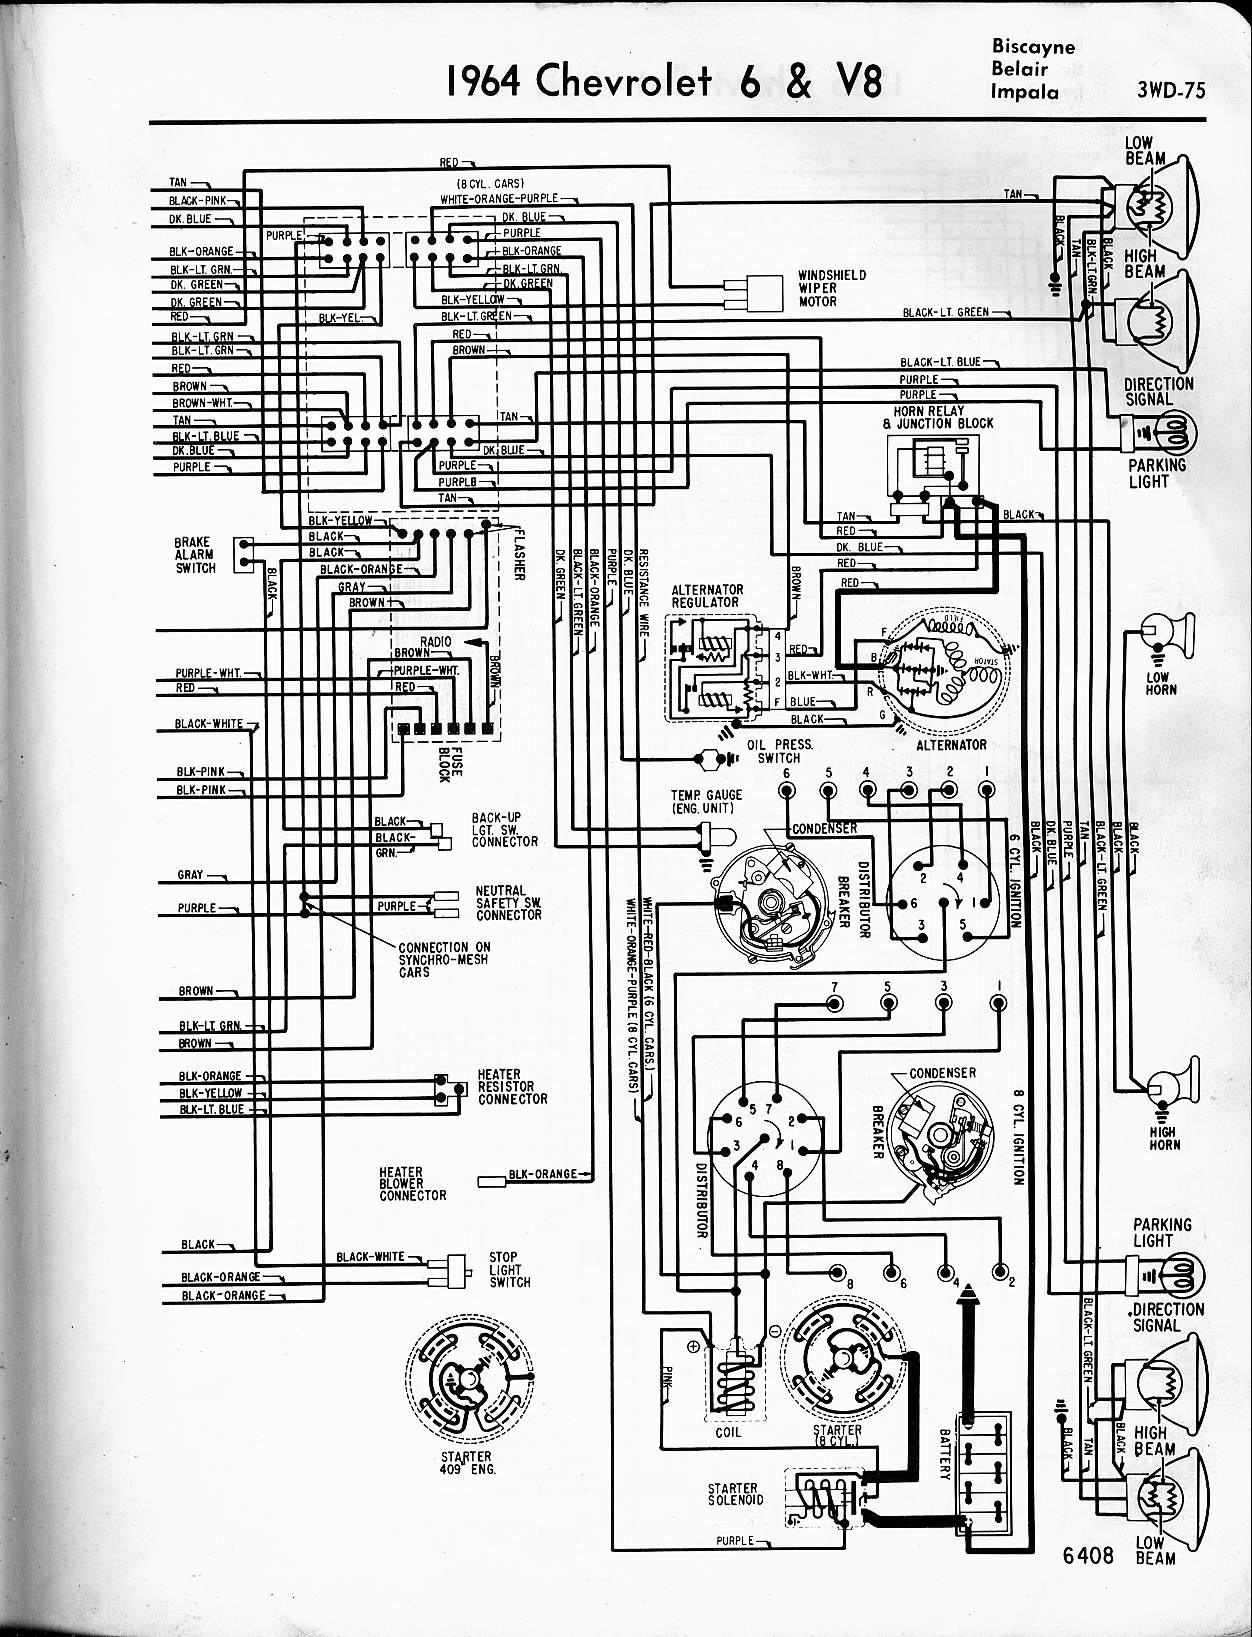 64 impala wiring diagram experts of wiring diagram u2022 rh evilcloud co uk 2002  chevy impala starter wiring diagram 2002 chevy impala wiring diagram radio